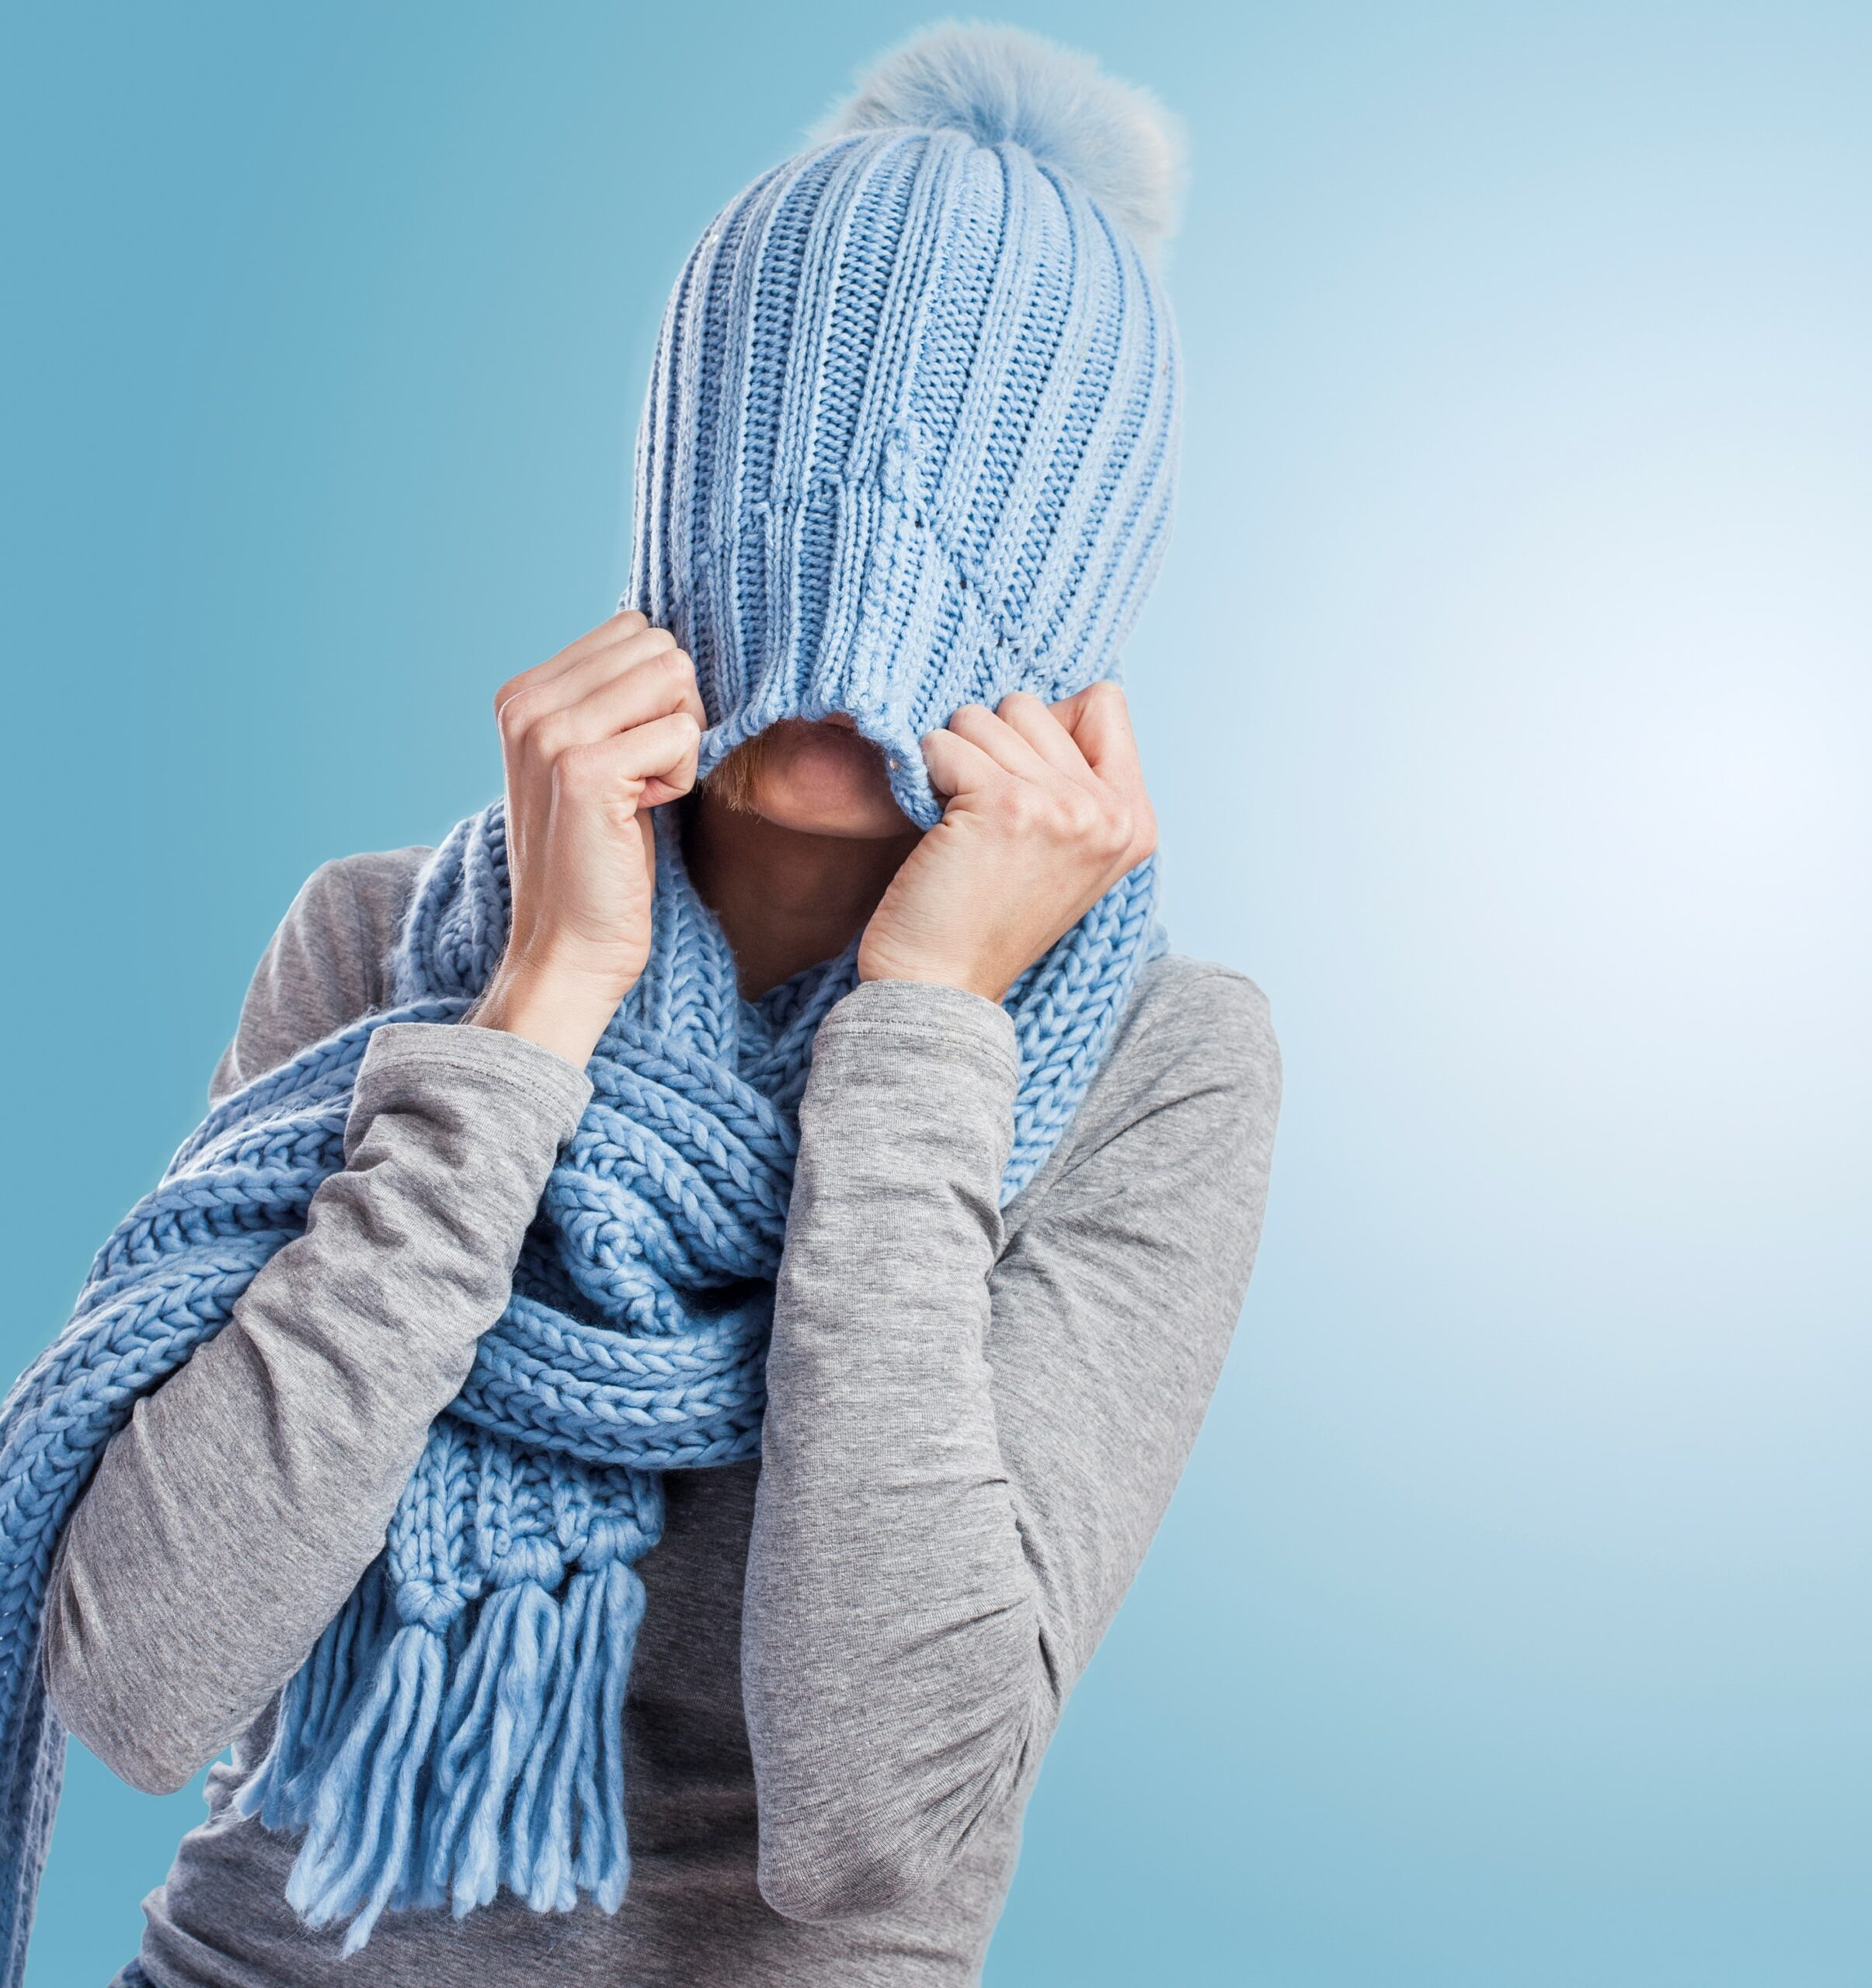 Eczema can flare in the winter